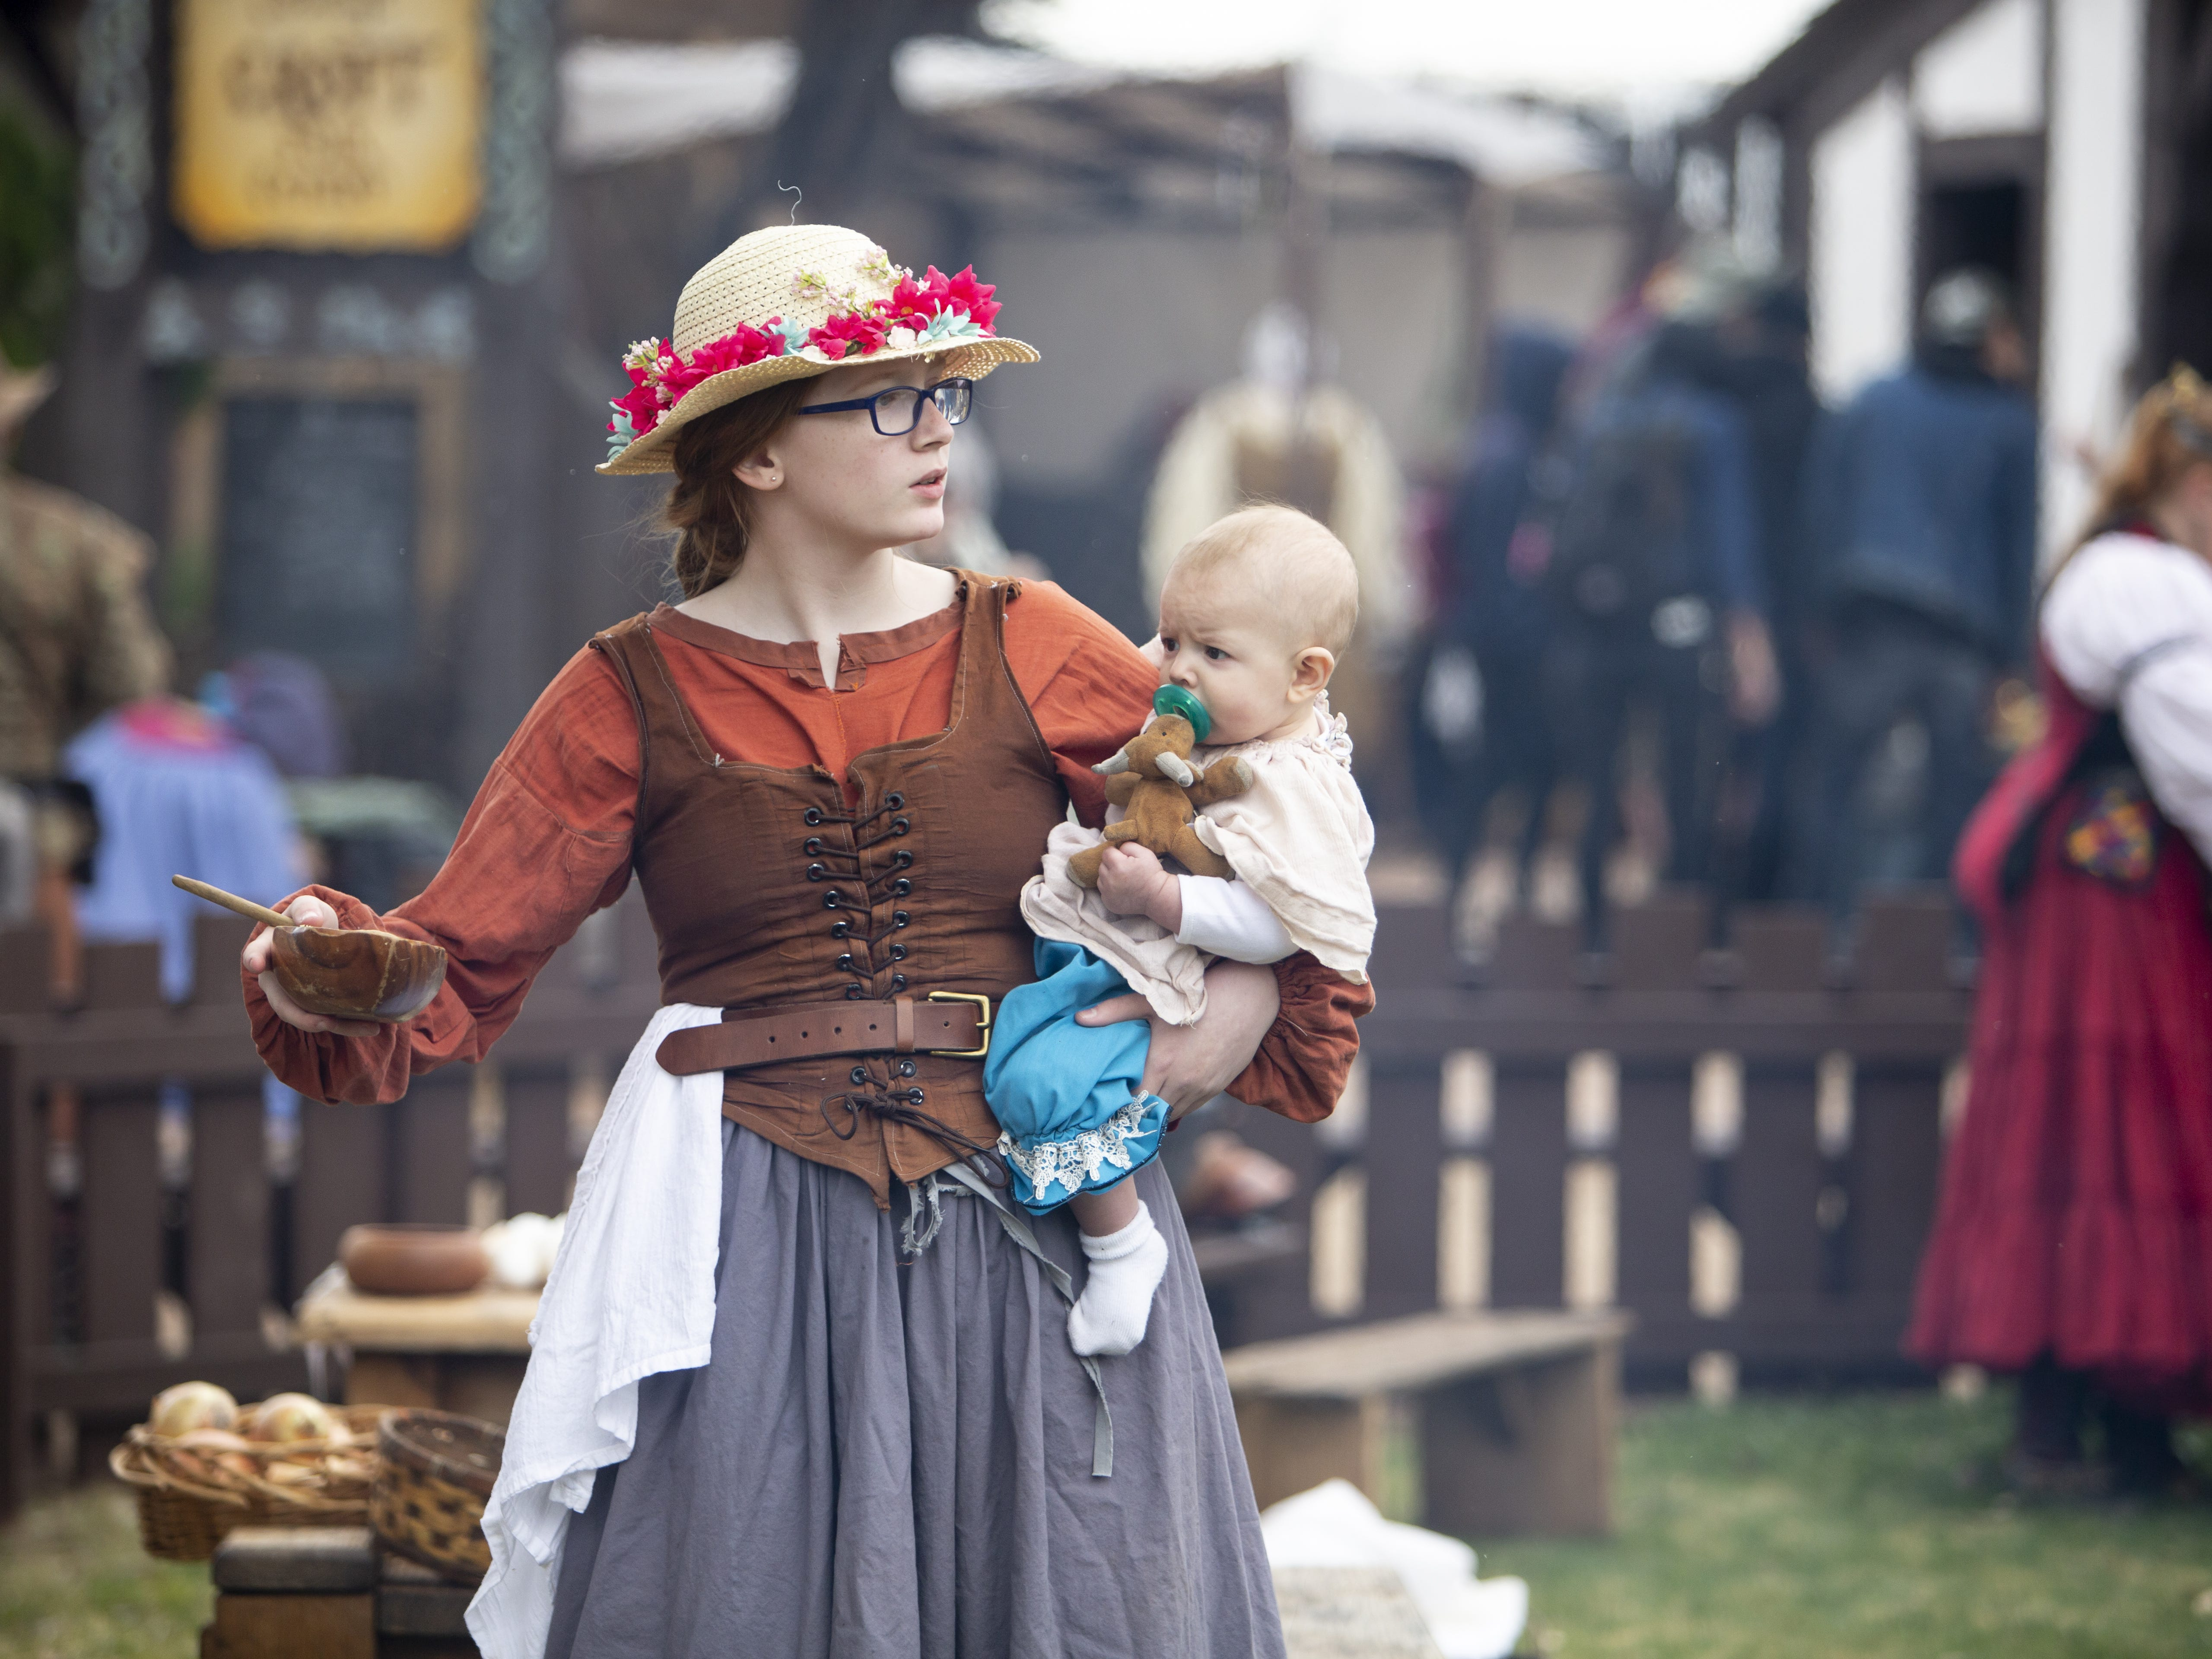 Alyssa Wood helps take care of a 6-month-old baby whose mother is also participating in the Arizona Renaissance Festival 2019 on Feb. 9, 2019 in Gold Canyon, Ariz.